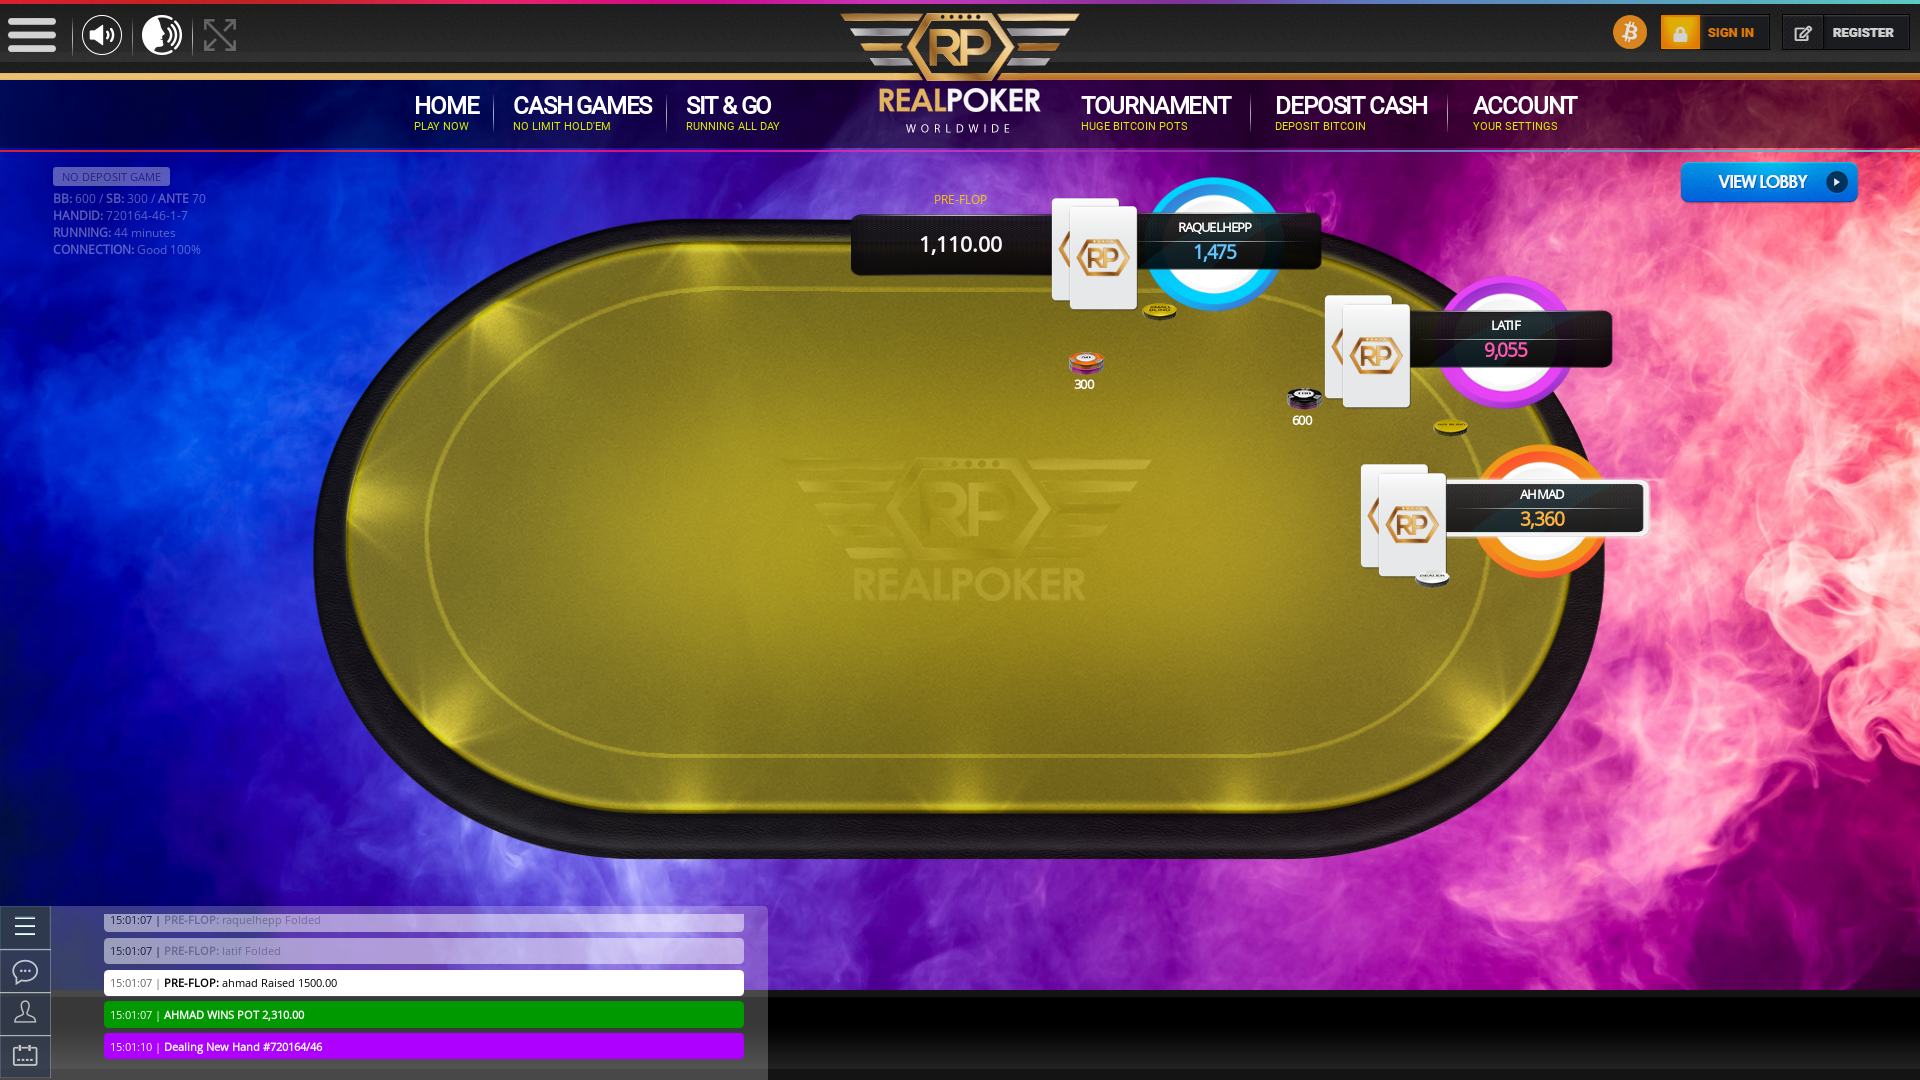 online poker on a 10 player table in the 44th minute match up